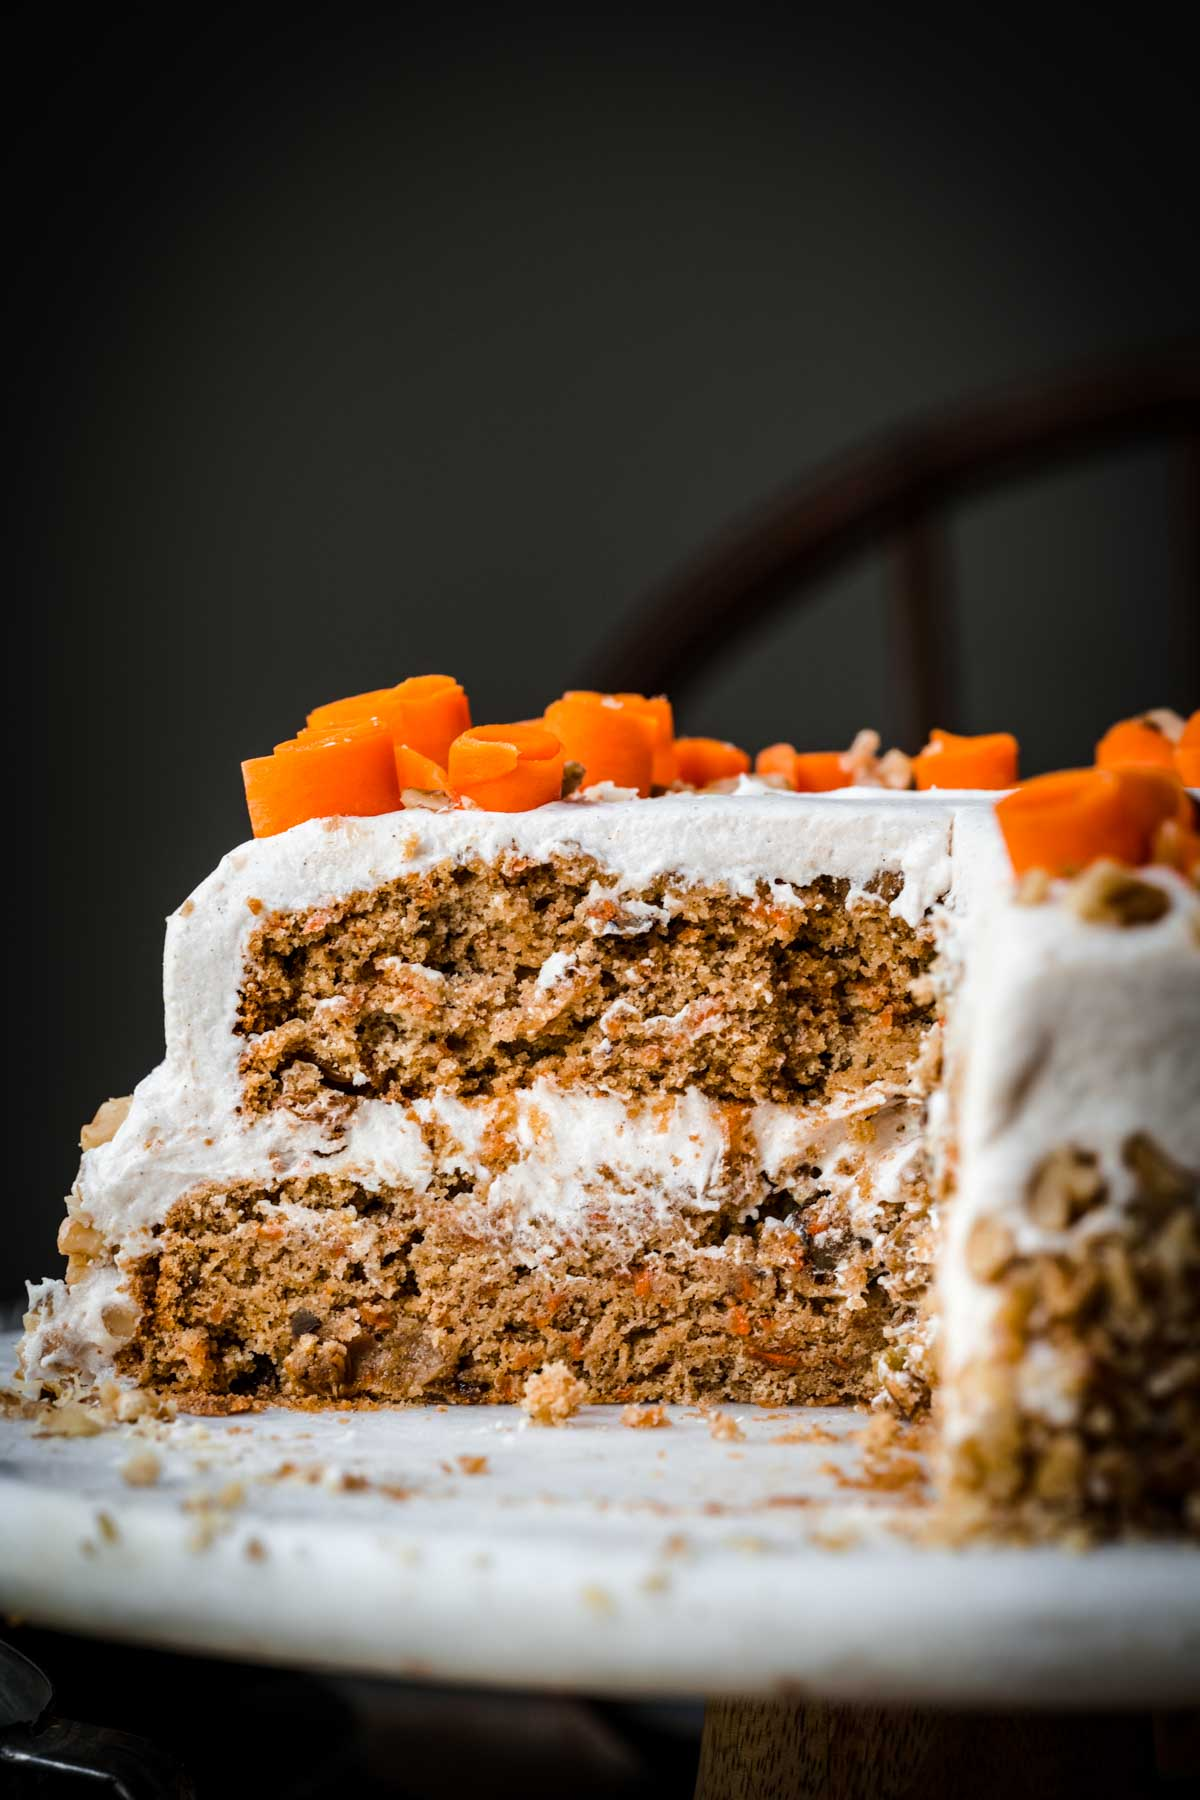 side view of vegan carrot cake slice on cake stand.